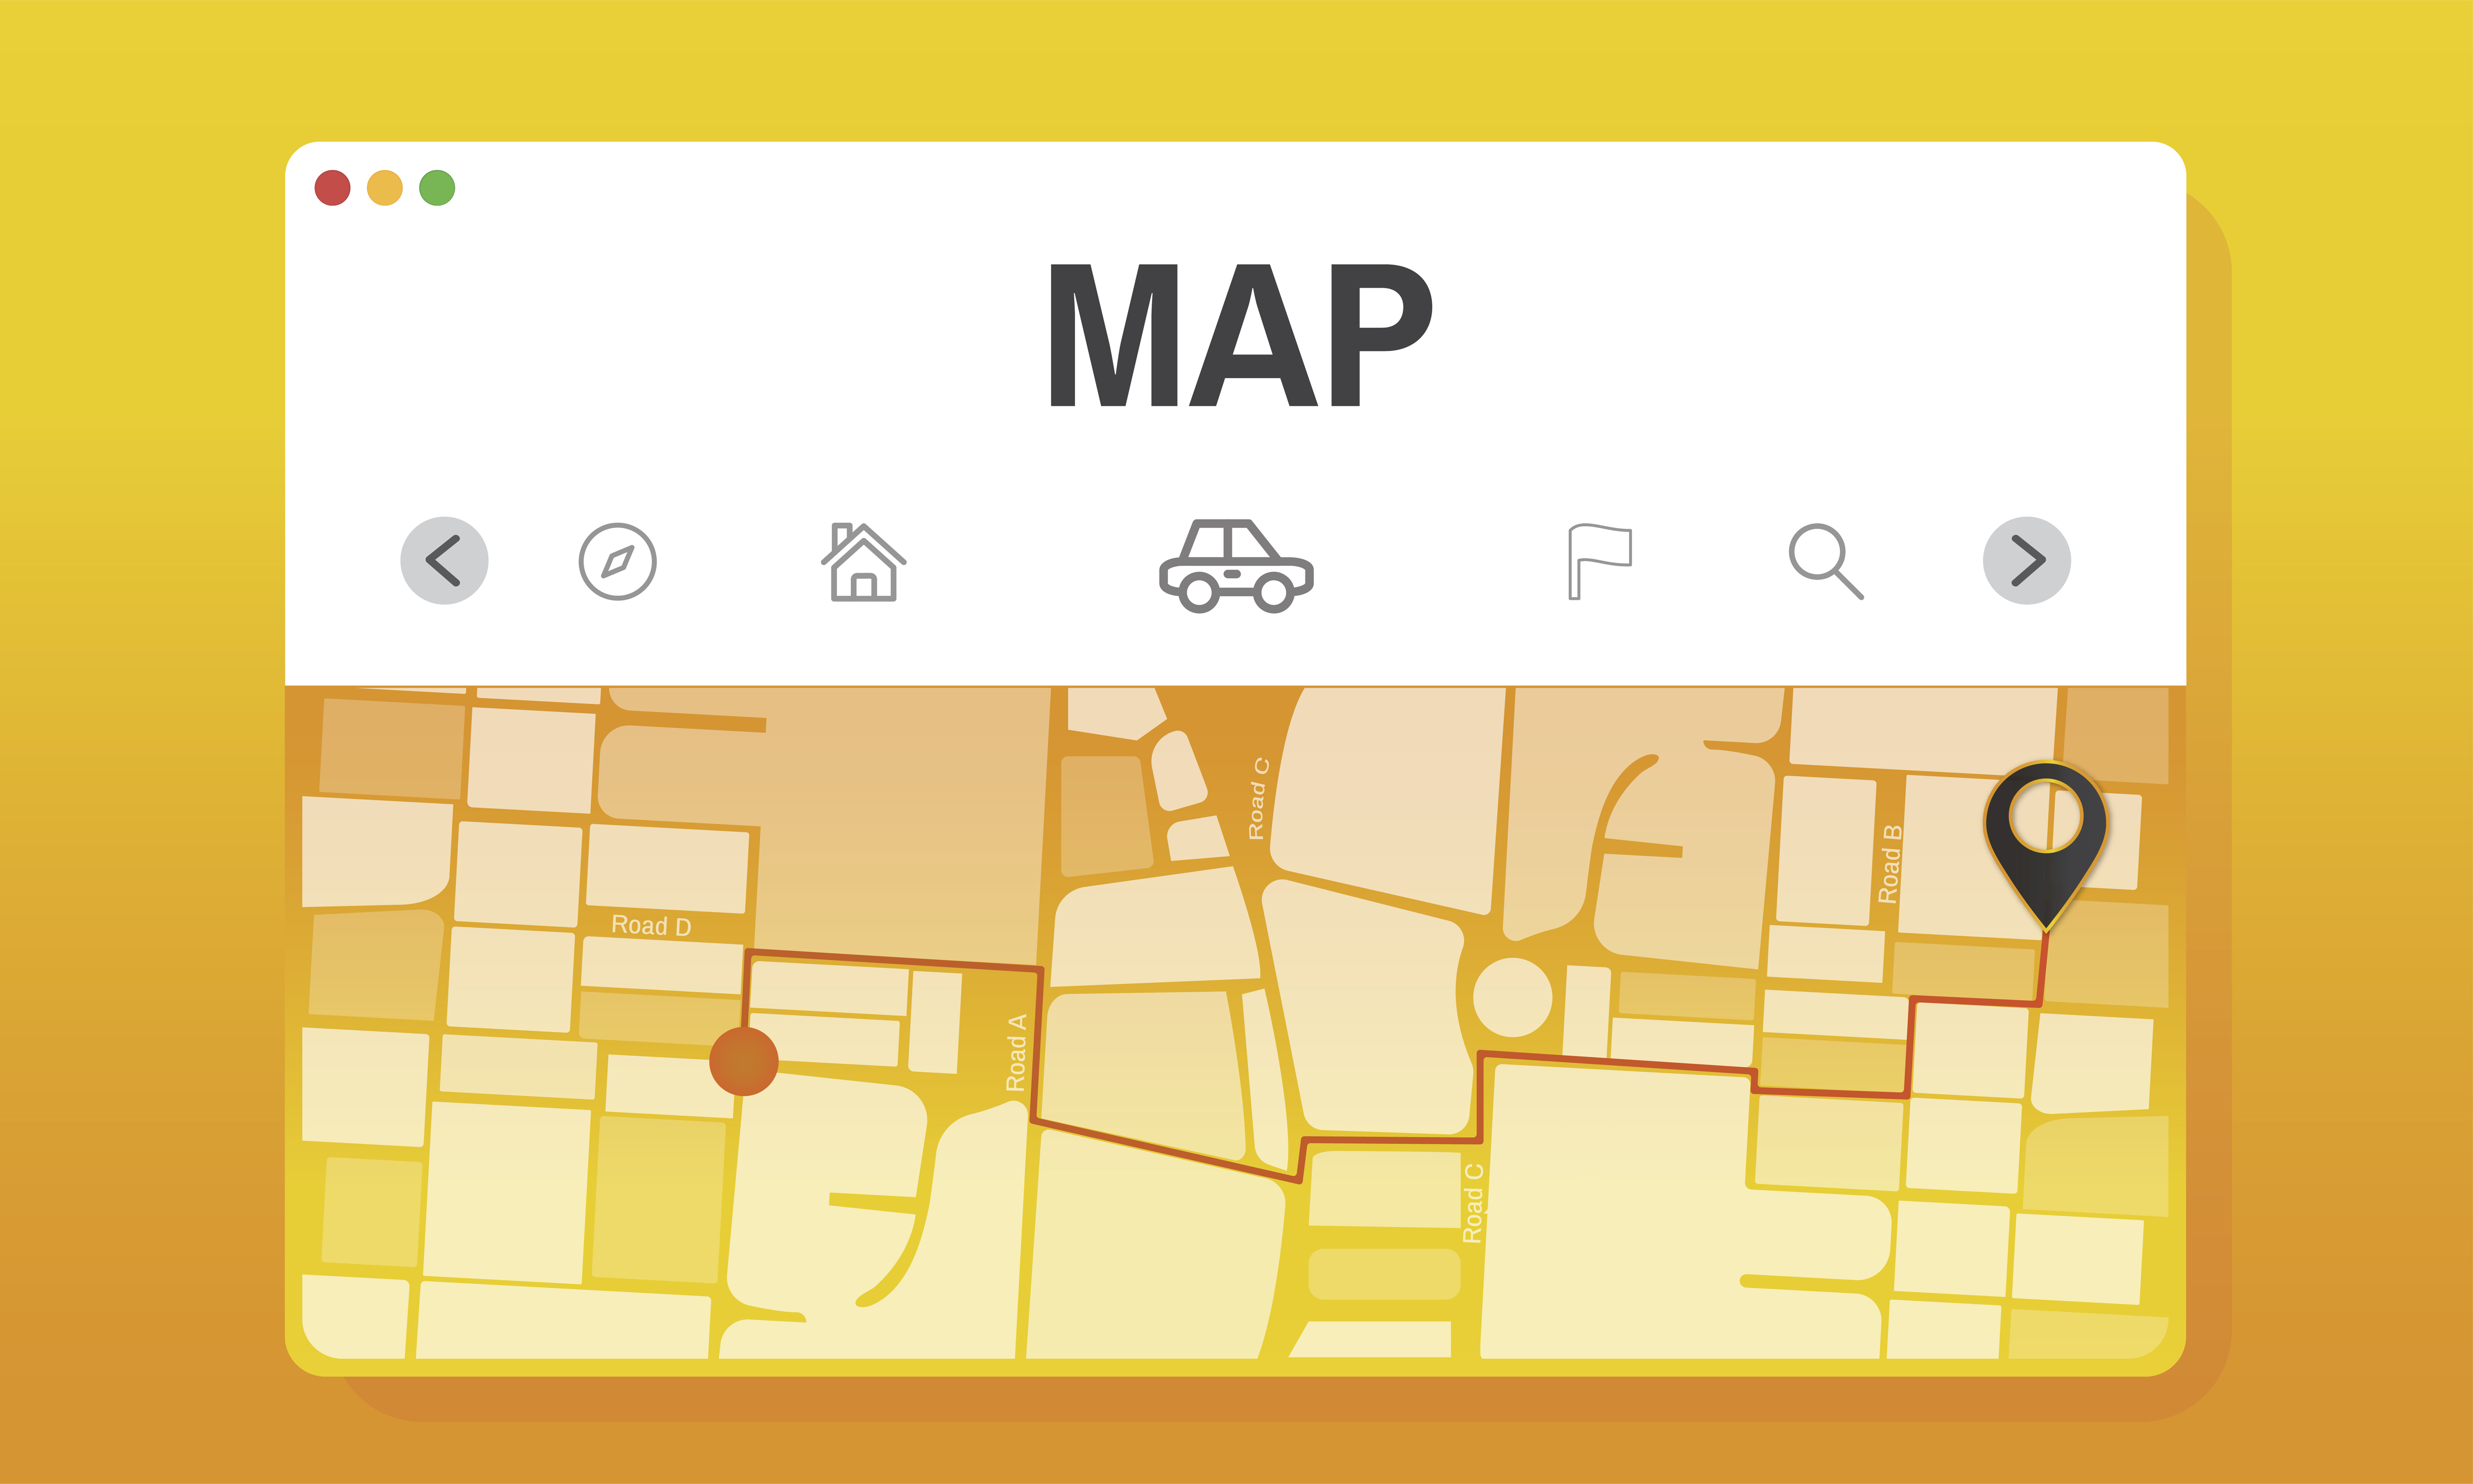 the visual shows a map in the field employee tracking process